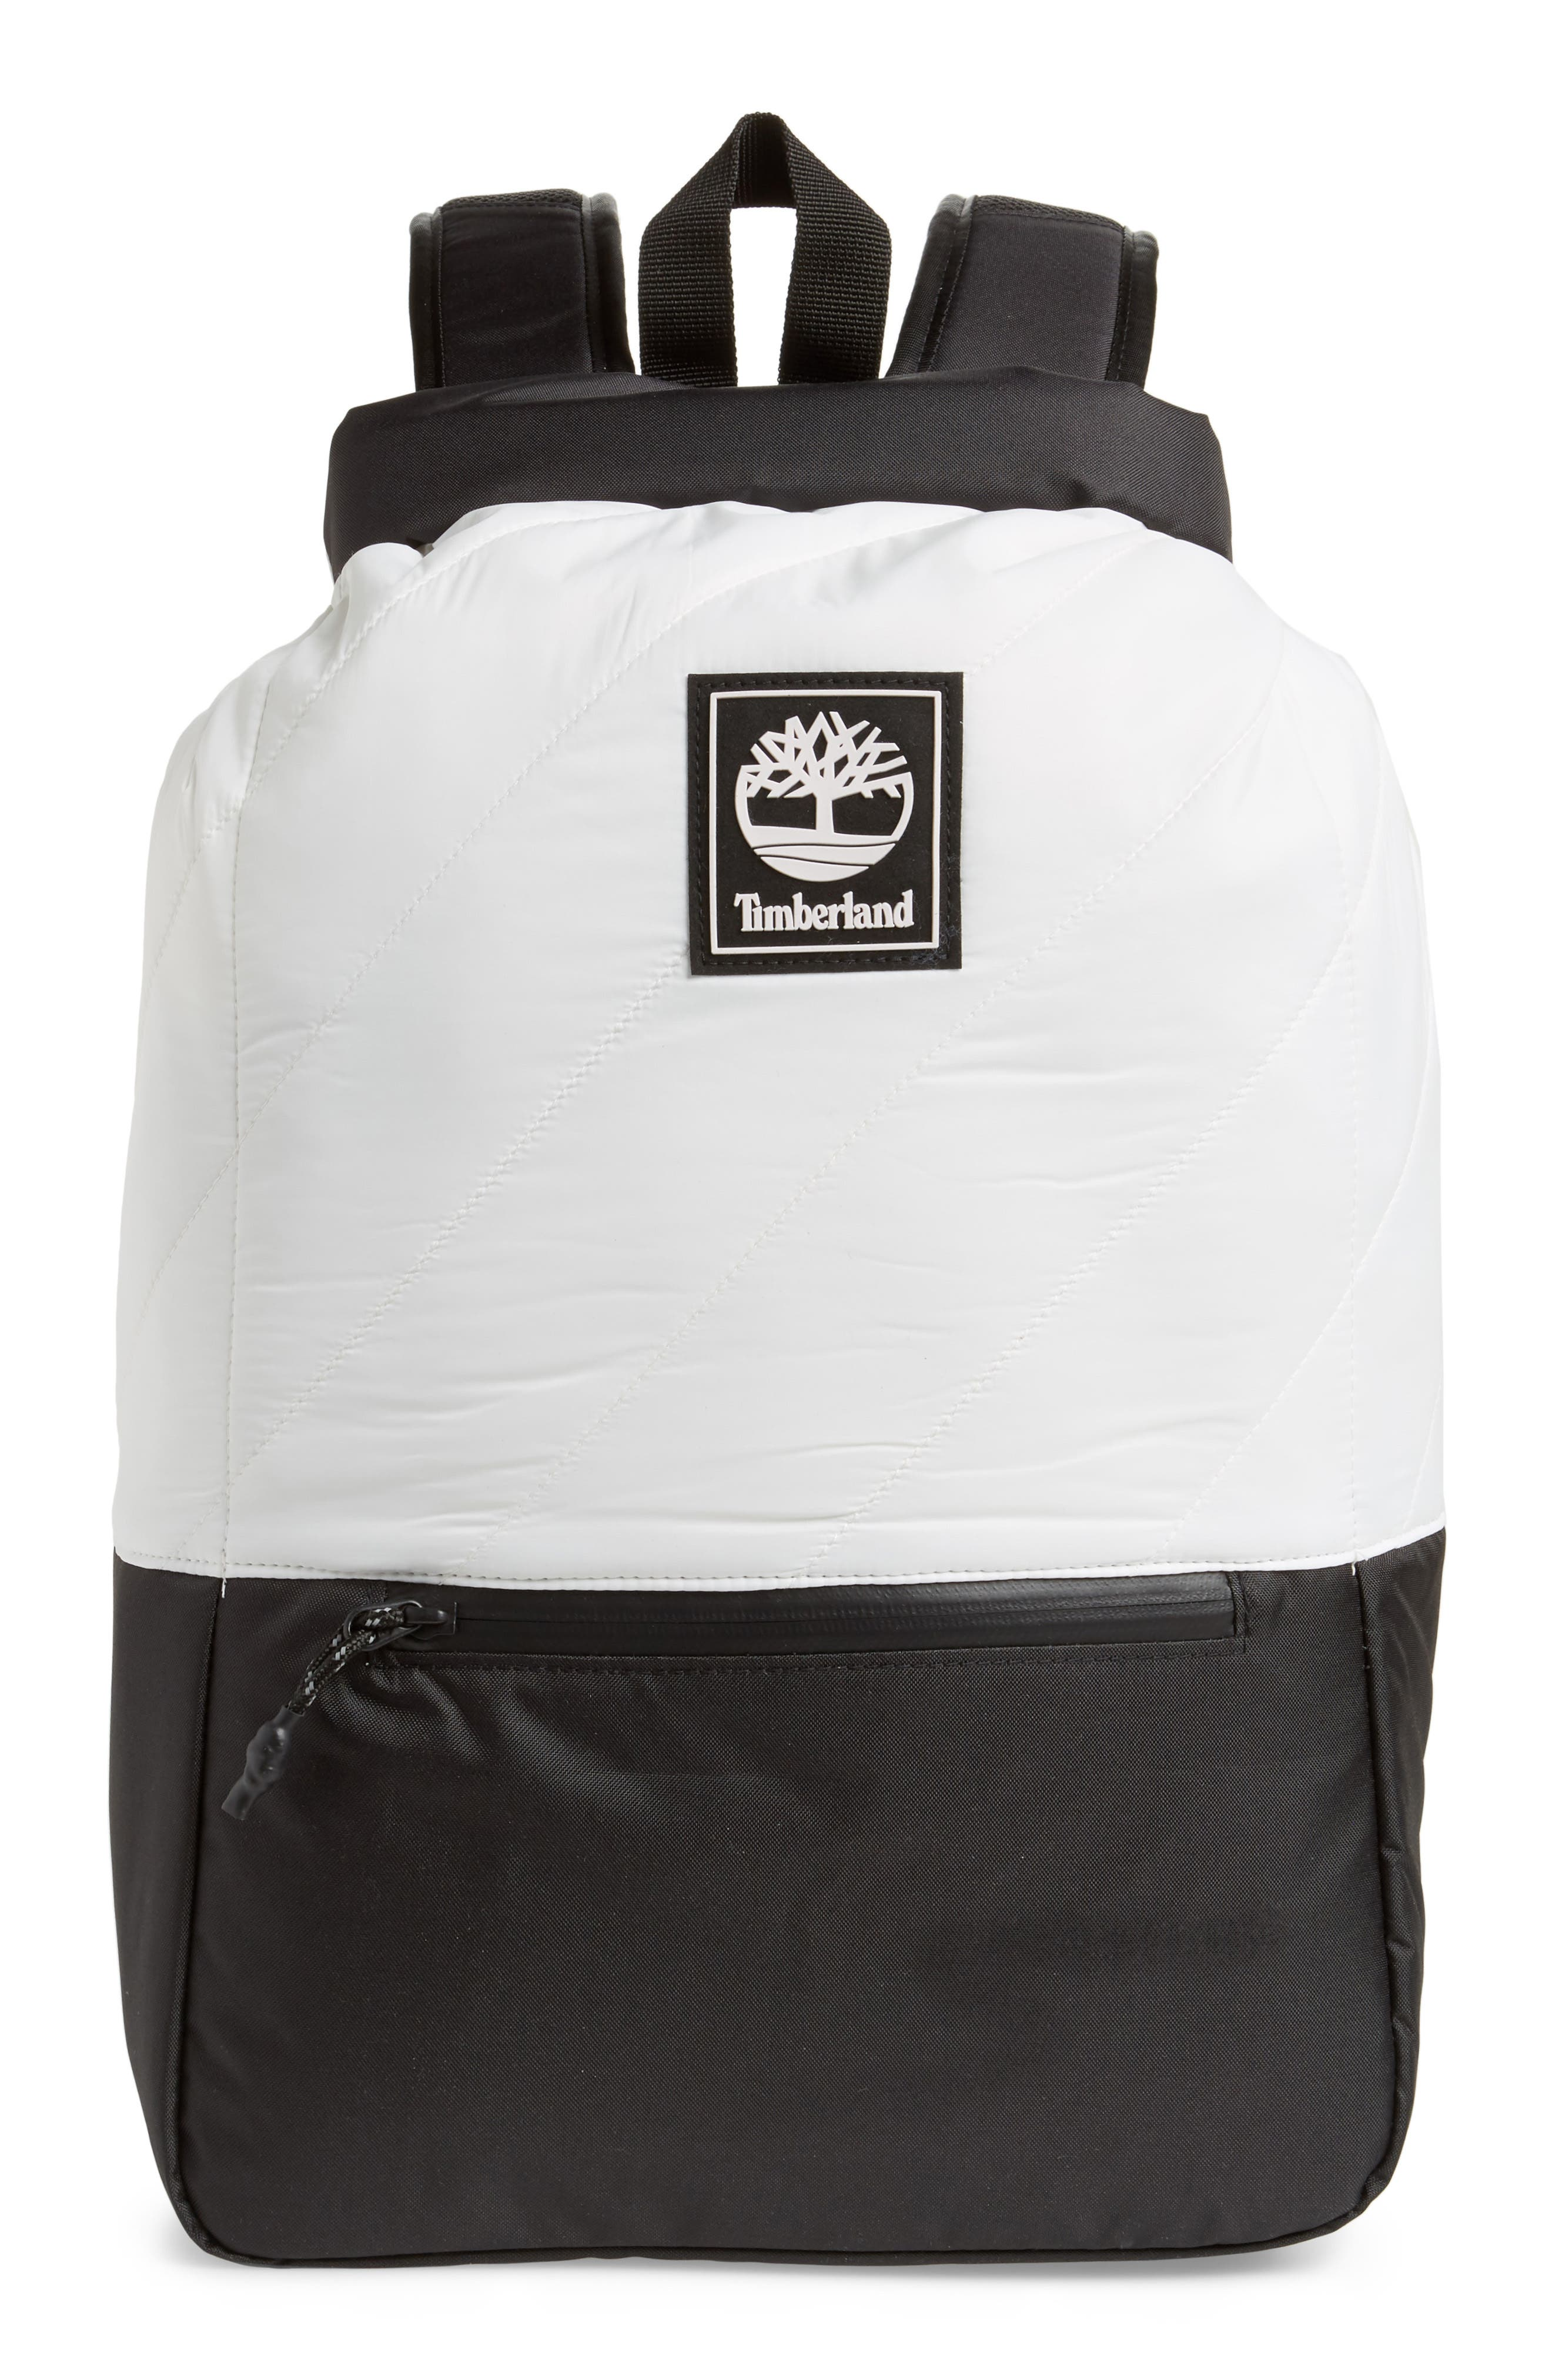 Timberland Roll Top Backpack - White